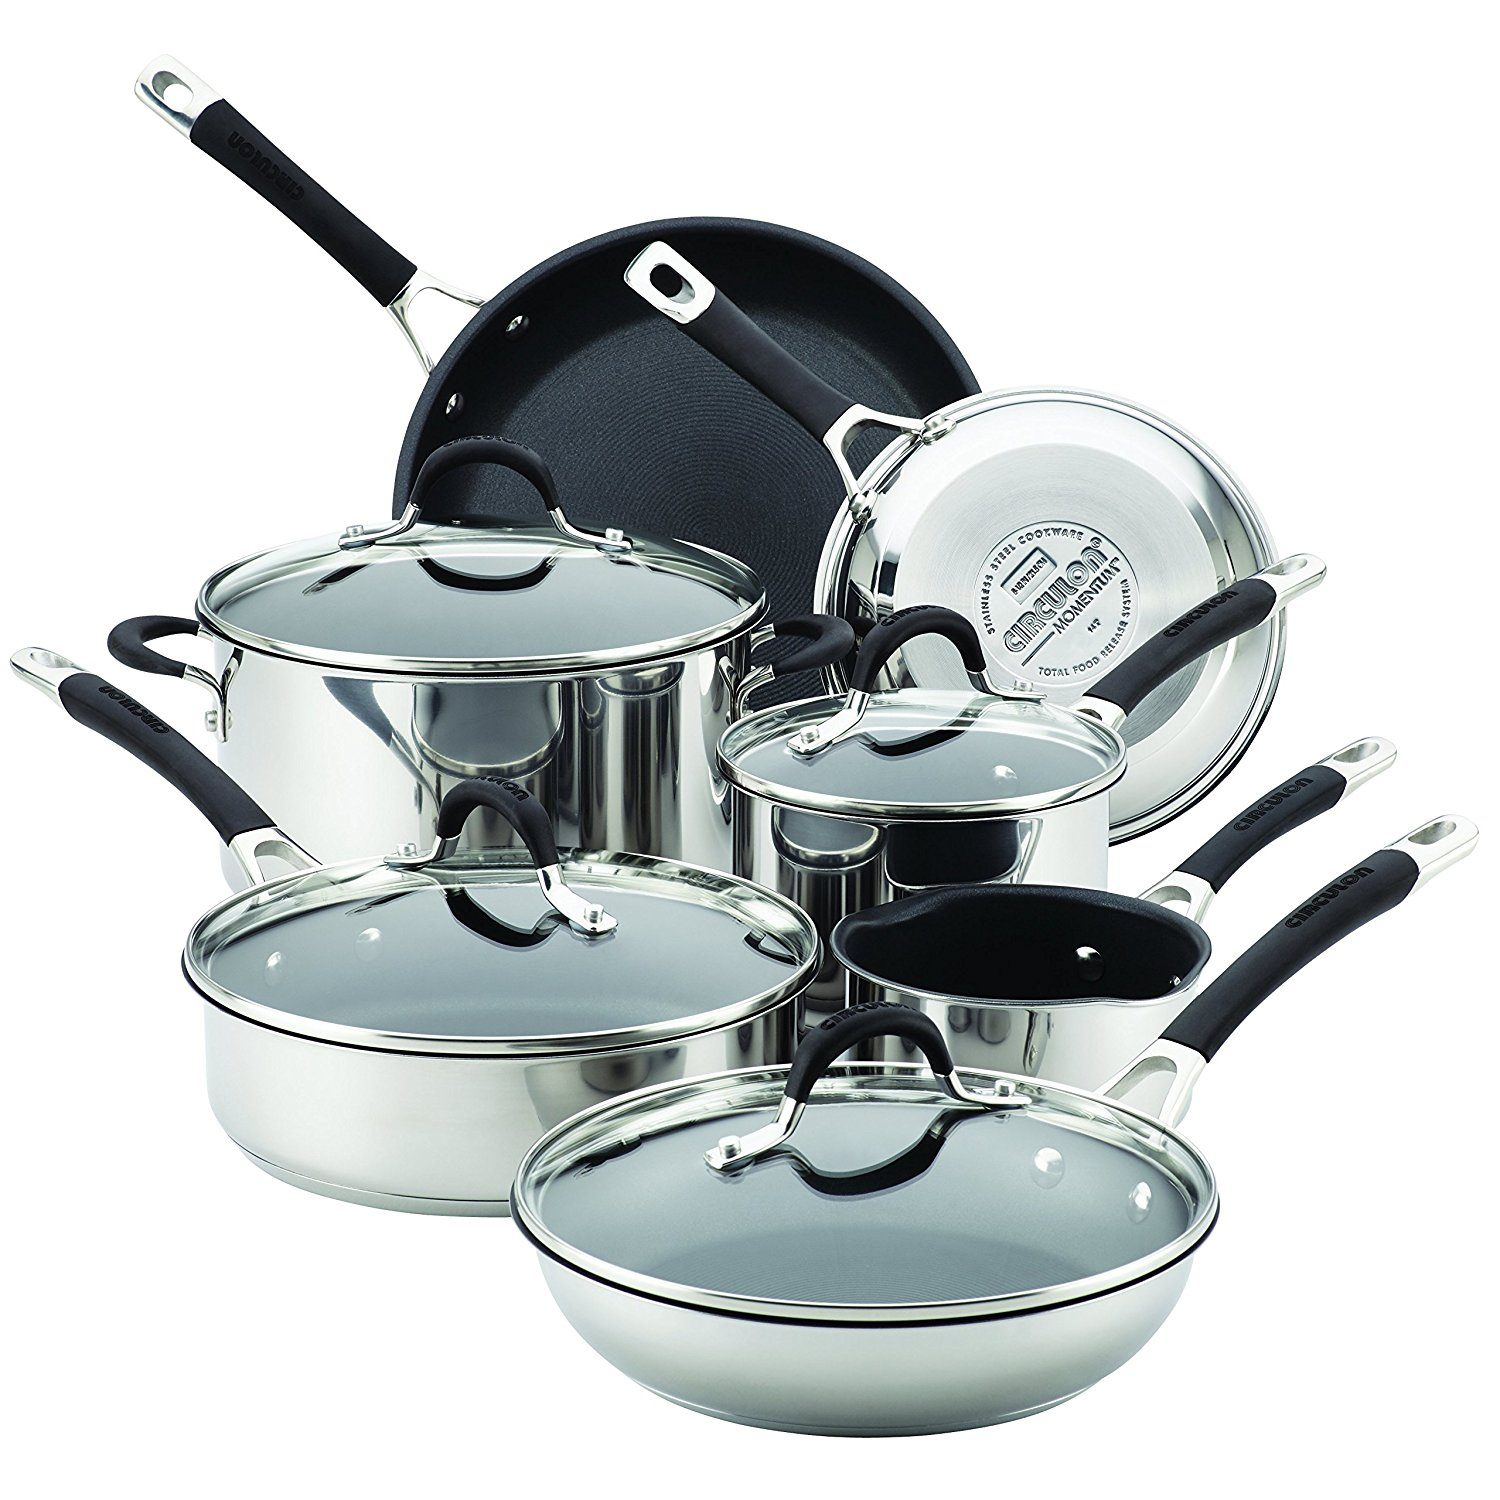 Circulon 78003 11 Piece Momentum Nonstick Cookware Set, Stainless Steel Review